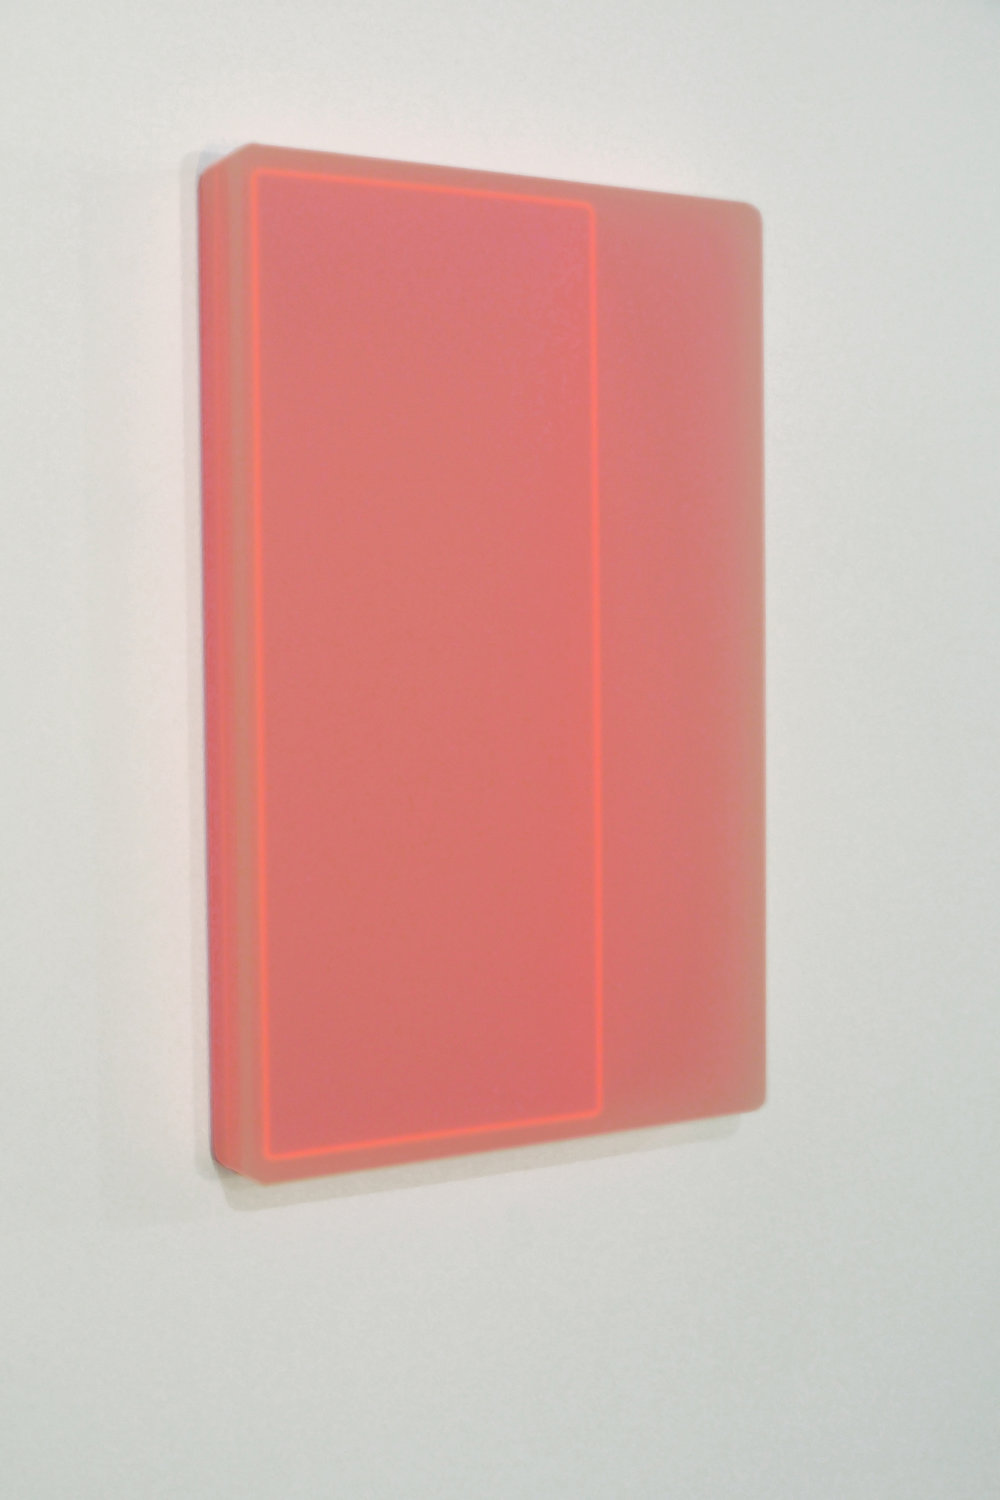 Karyn Taylor,  Looped Equation II,  2015, Perspex, 40 x 64 x 6.5cm